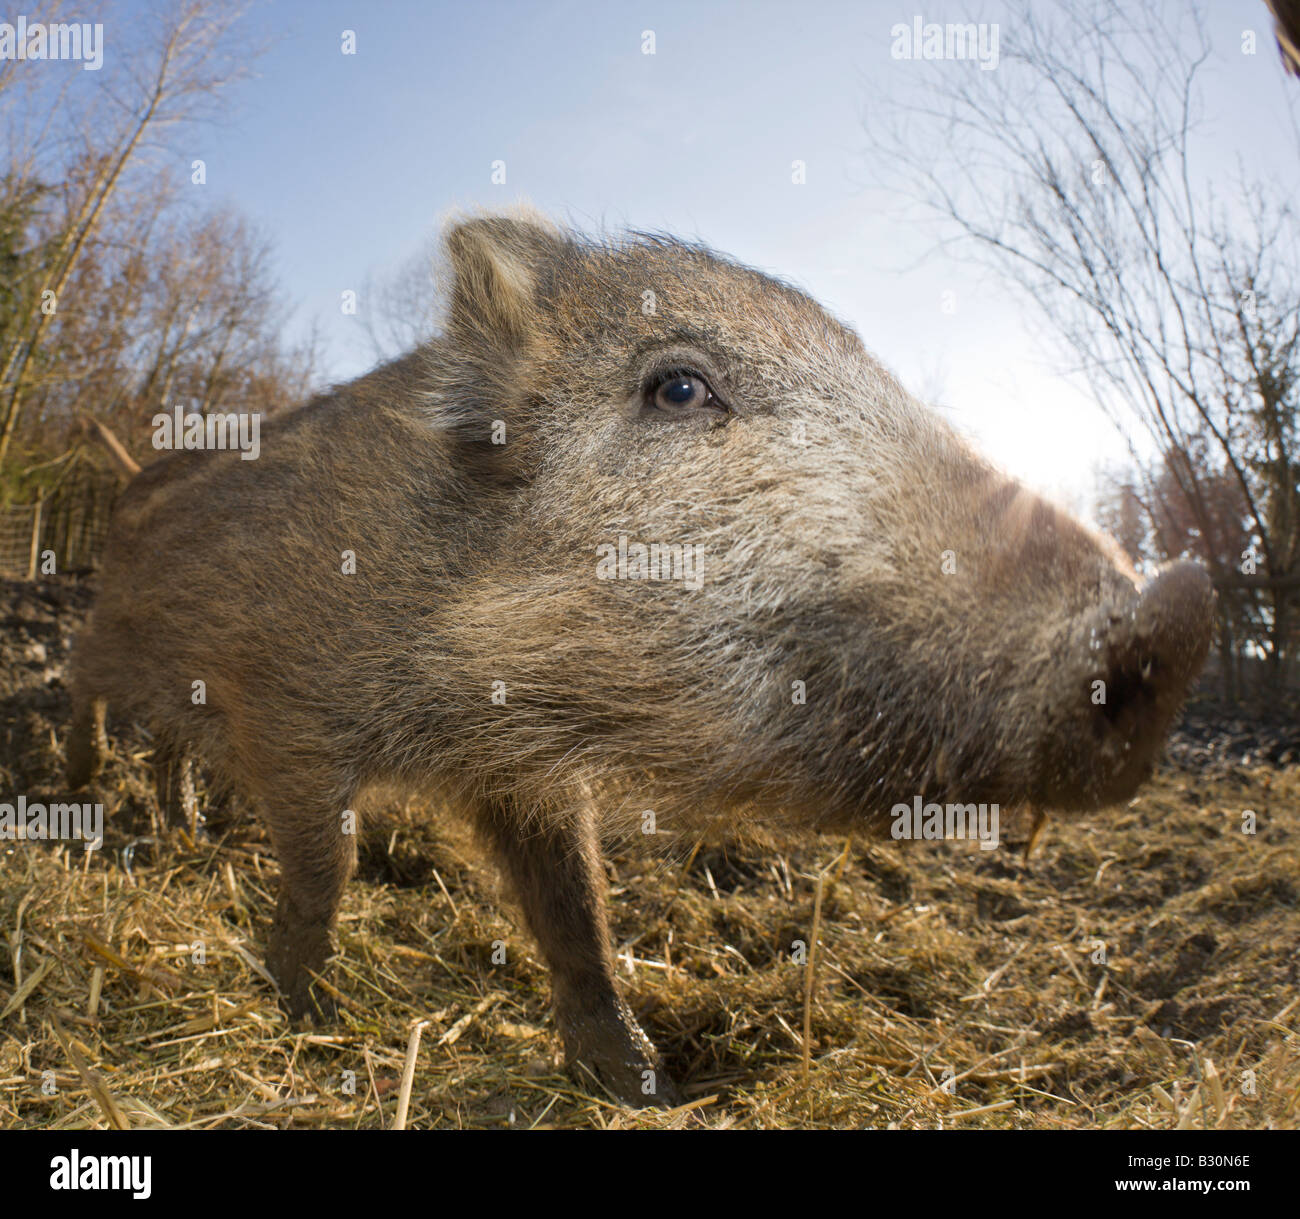 Wild boar Sus scrofa Germany Bavaria - Stock Image